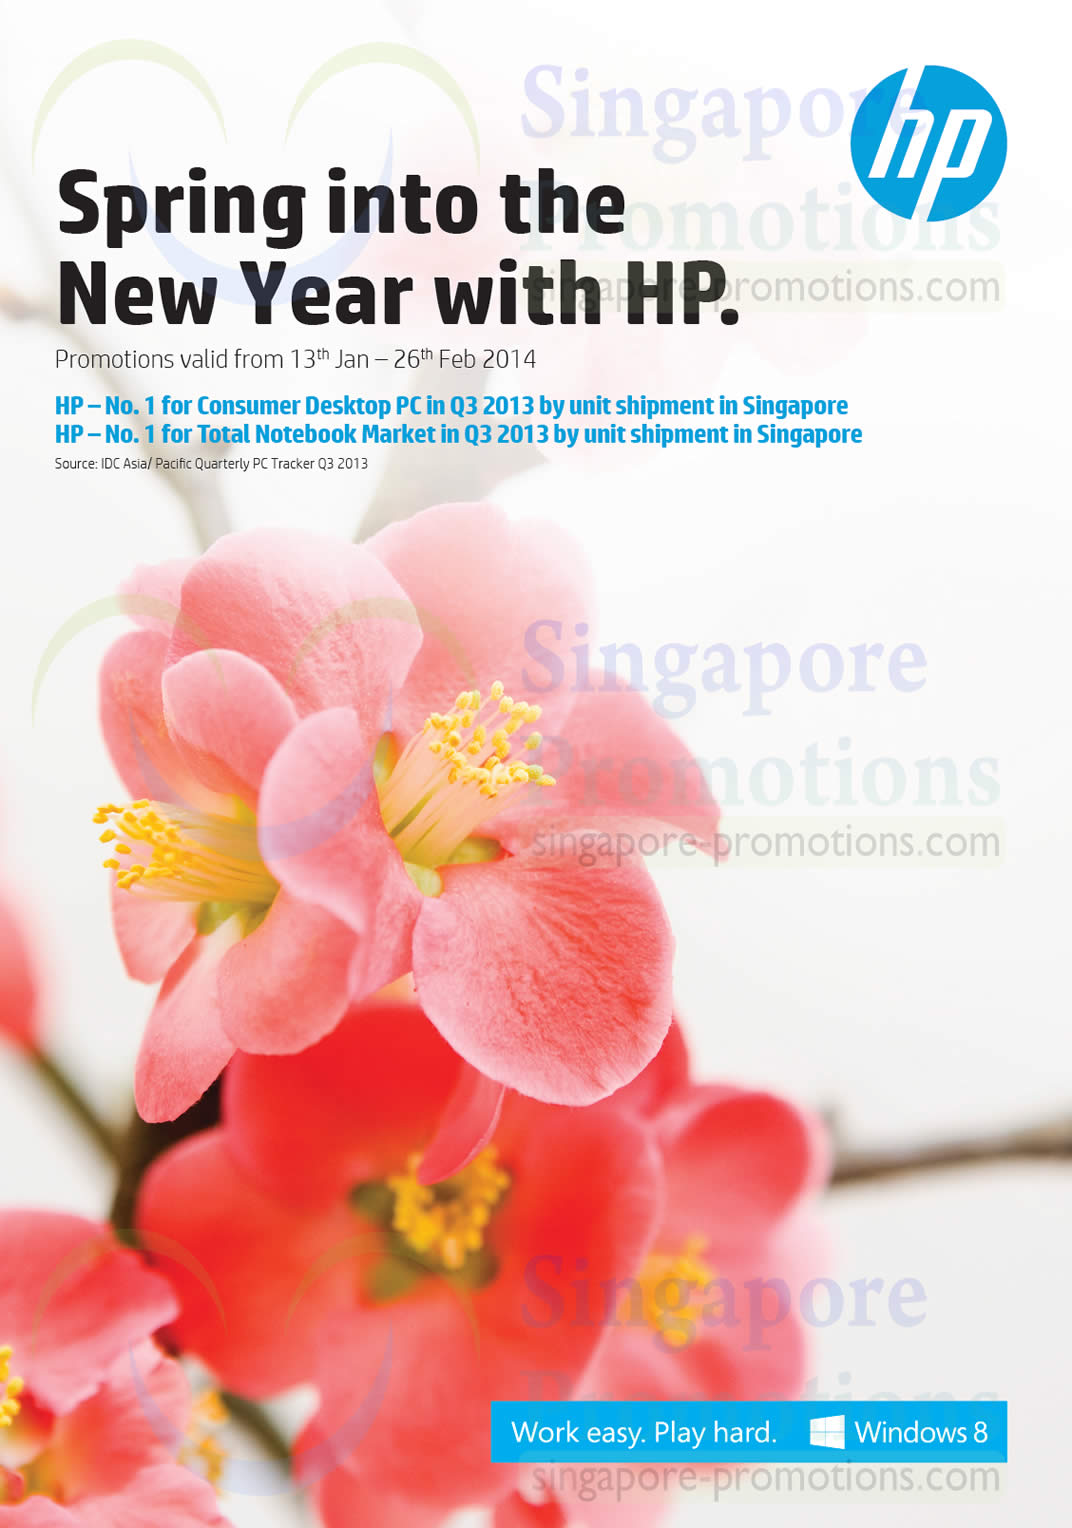 HP Spring Promotions